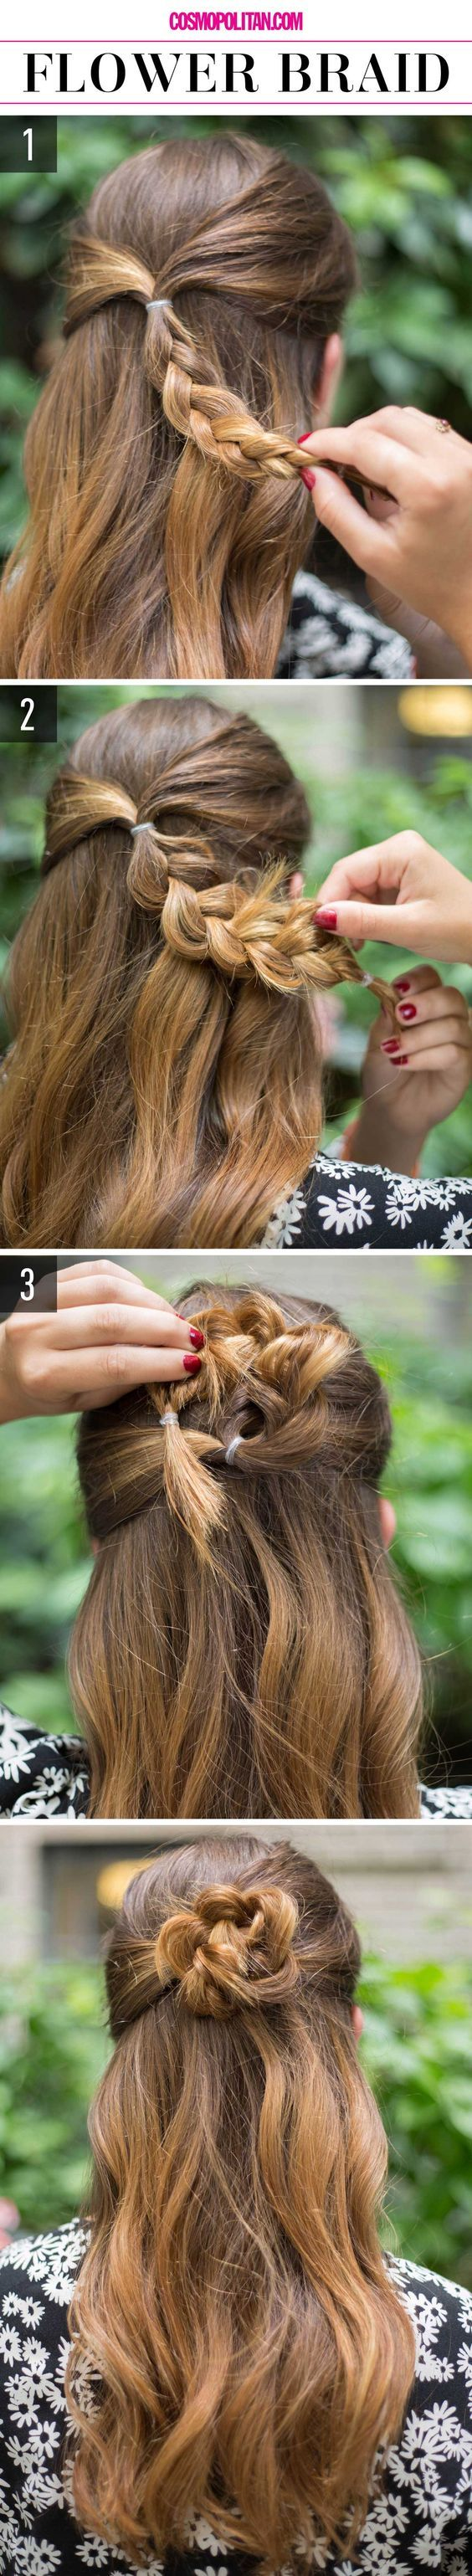 FLOWER BRAID: Create this pretty half-up and half-down look with this tutorial. Start by gathering a section of hair from both sides of your head and pulling it into a small ponytail in the back. Braid this and then tug at sections to loosen it (this creates a sexy, slightly messy look). Spin the braid around into a bun and secure it with bobby pins. Find the full instructions and more easy hair ideas here!: